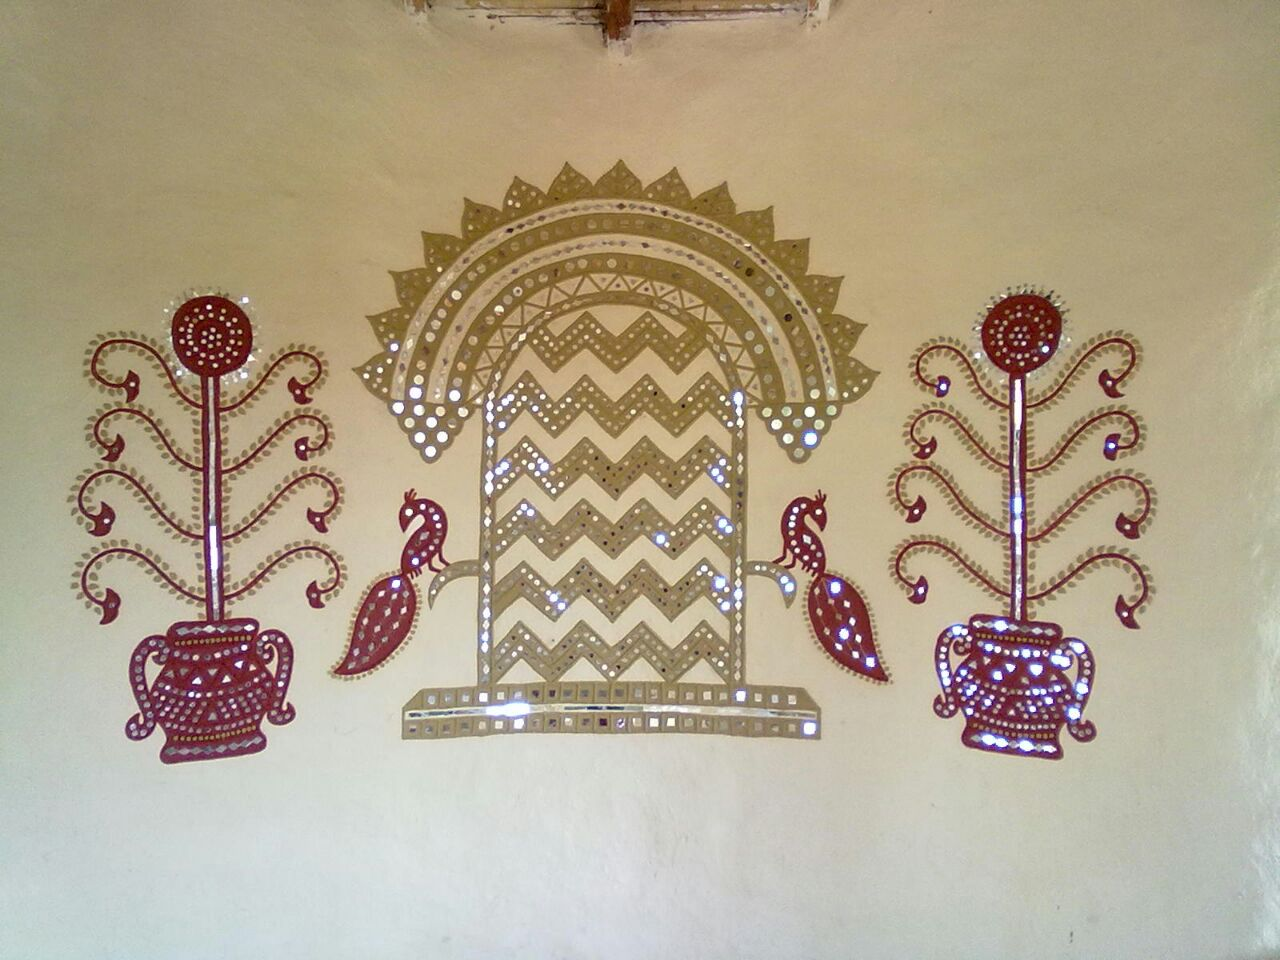 Attractive Mud Mirror Handart Work In Gujarat | free Classified | Free Advertising | free classified ads